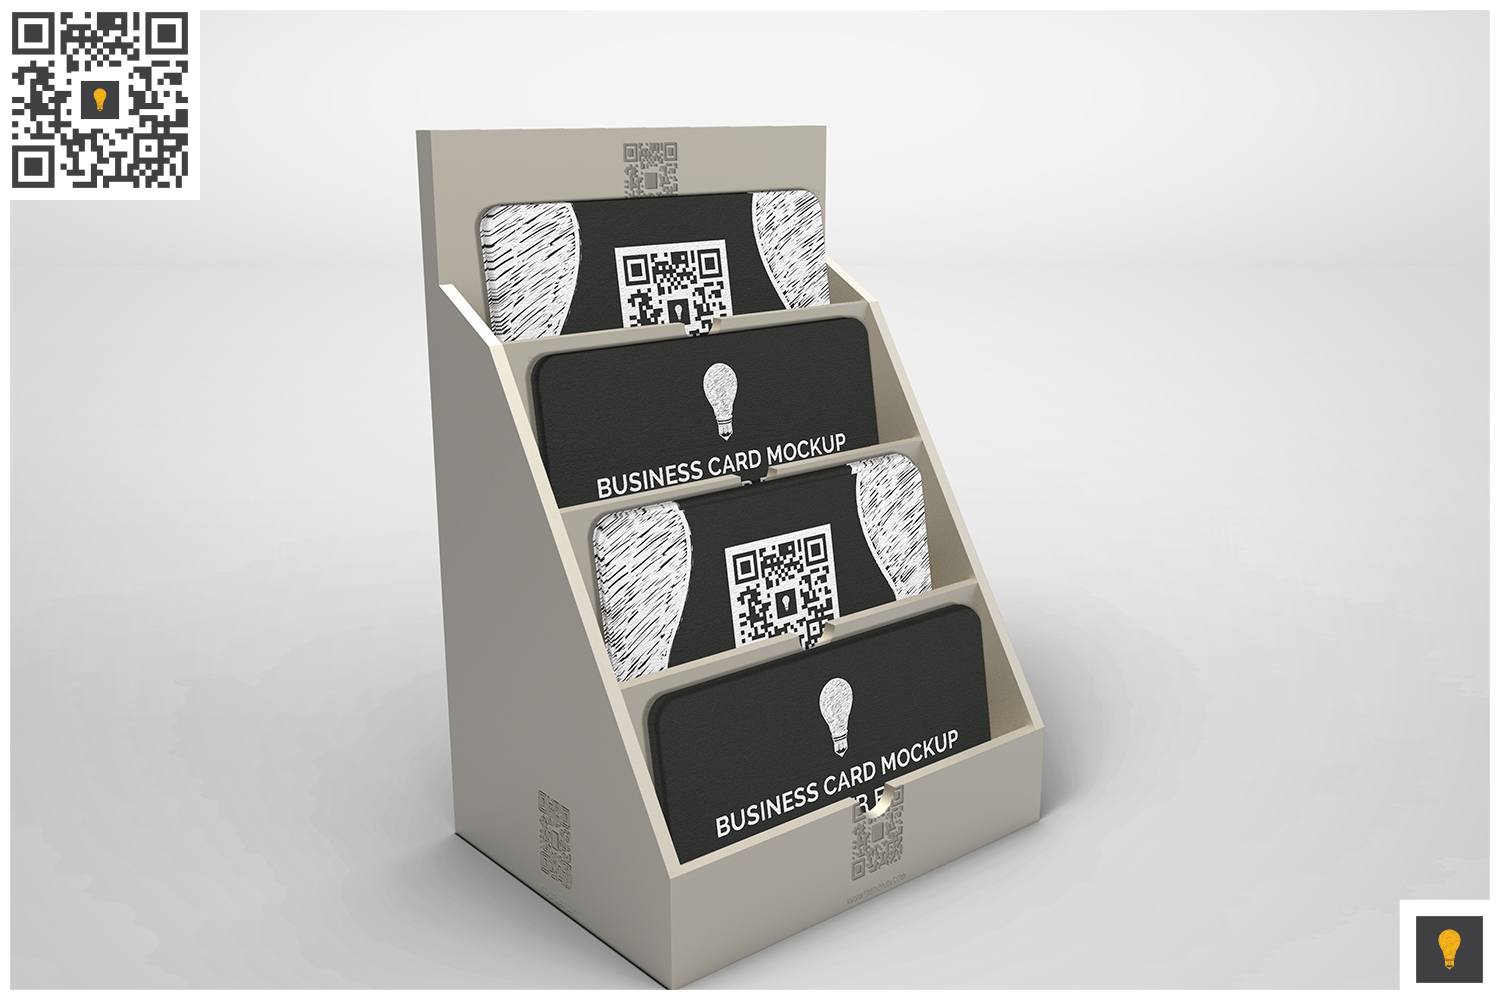 Business Card Holder Mockup example image 3